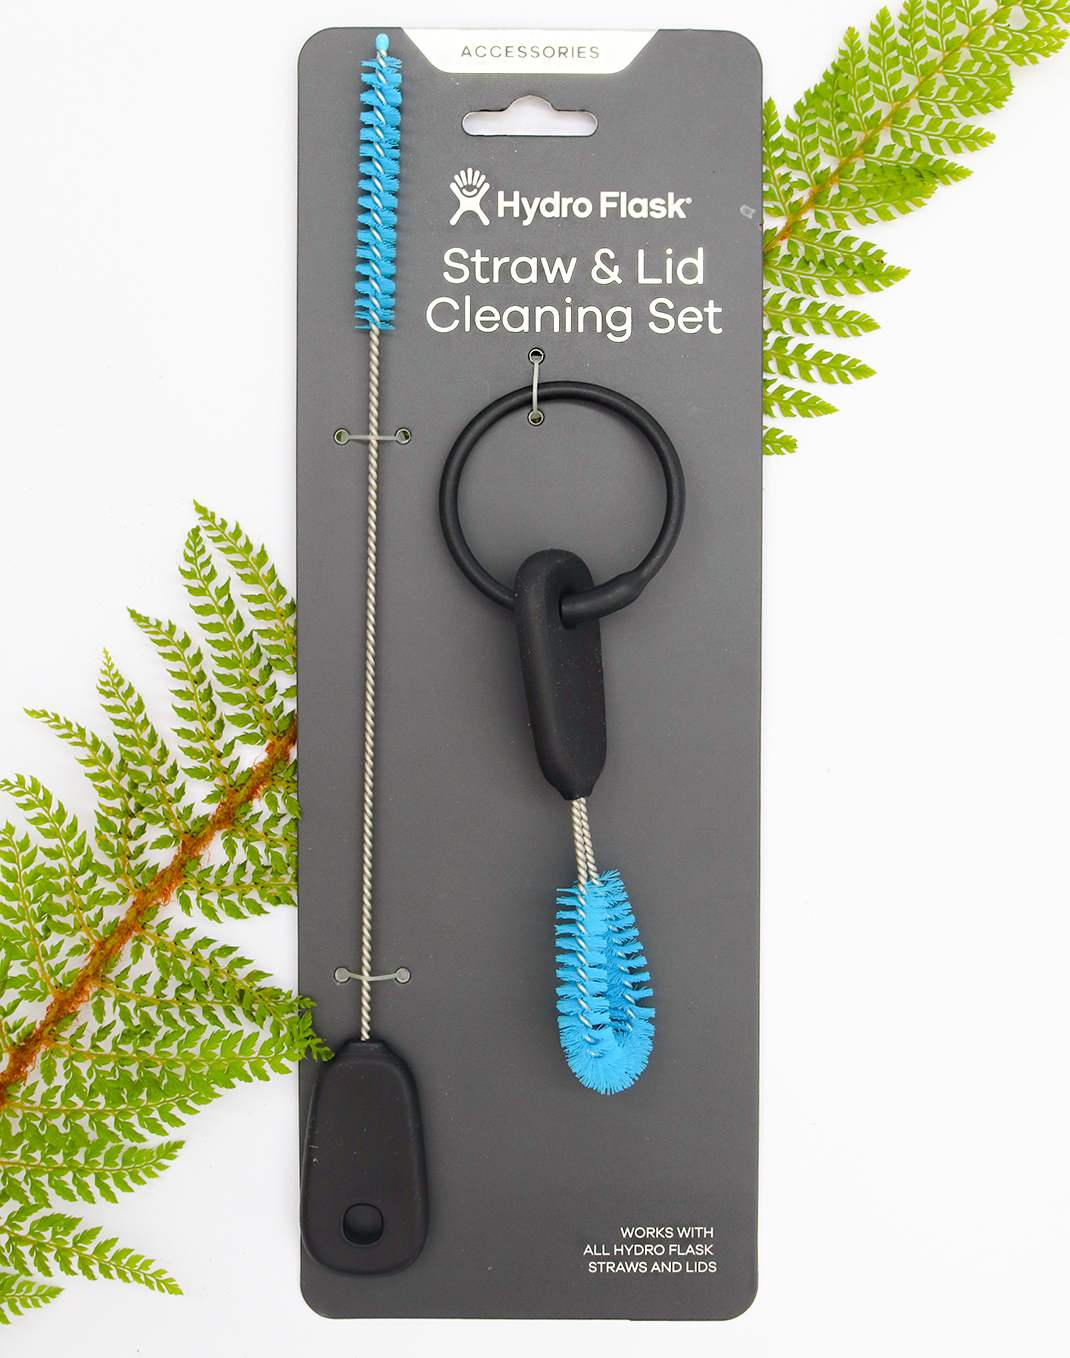 Straw & Lid Cleaning Set